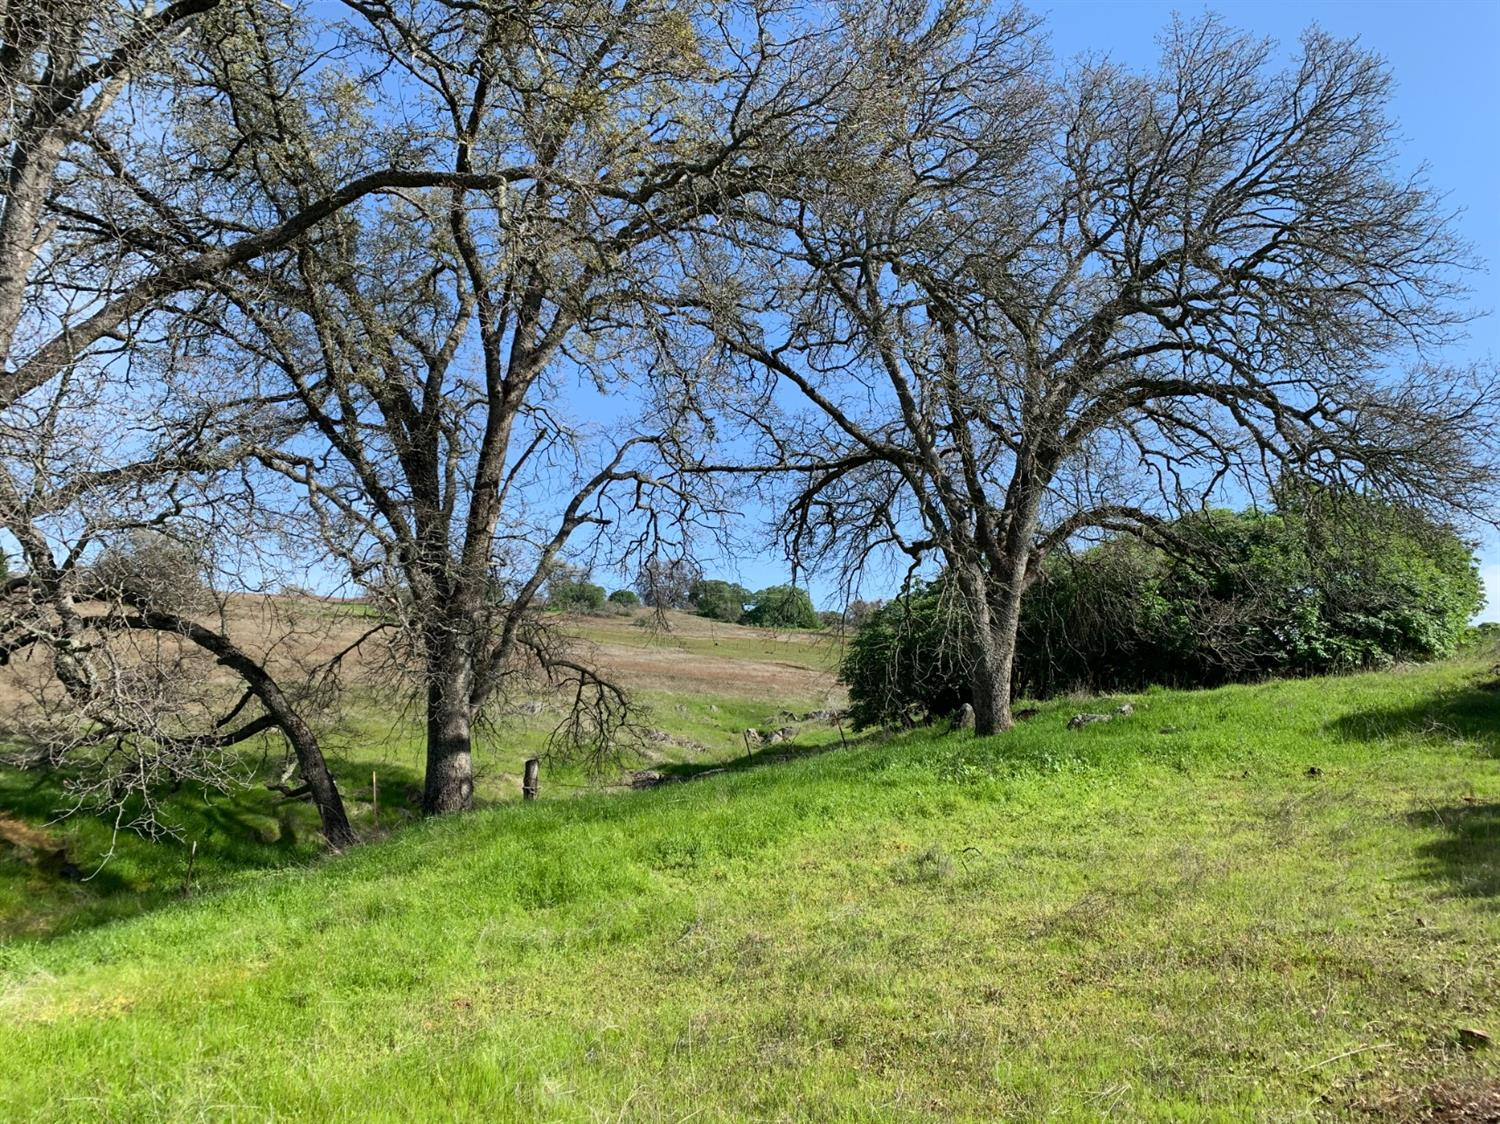 This property is located in the path of progress off Bass Lake Road & is within the Bass Lake Hills Specific Plan Area. Beautiful majestic oak trees set among rolling land ideal for custom homes to be built. Views from higher elevation on this parcel. Zoned MPD (Medium Planned Density) . Maps are available, please confirm with El Dorado County for details. There is an older mobile home on the property that will remain with no value. Detached garage too. Septic system & electricity on the property. Must have agent to view this property.